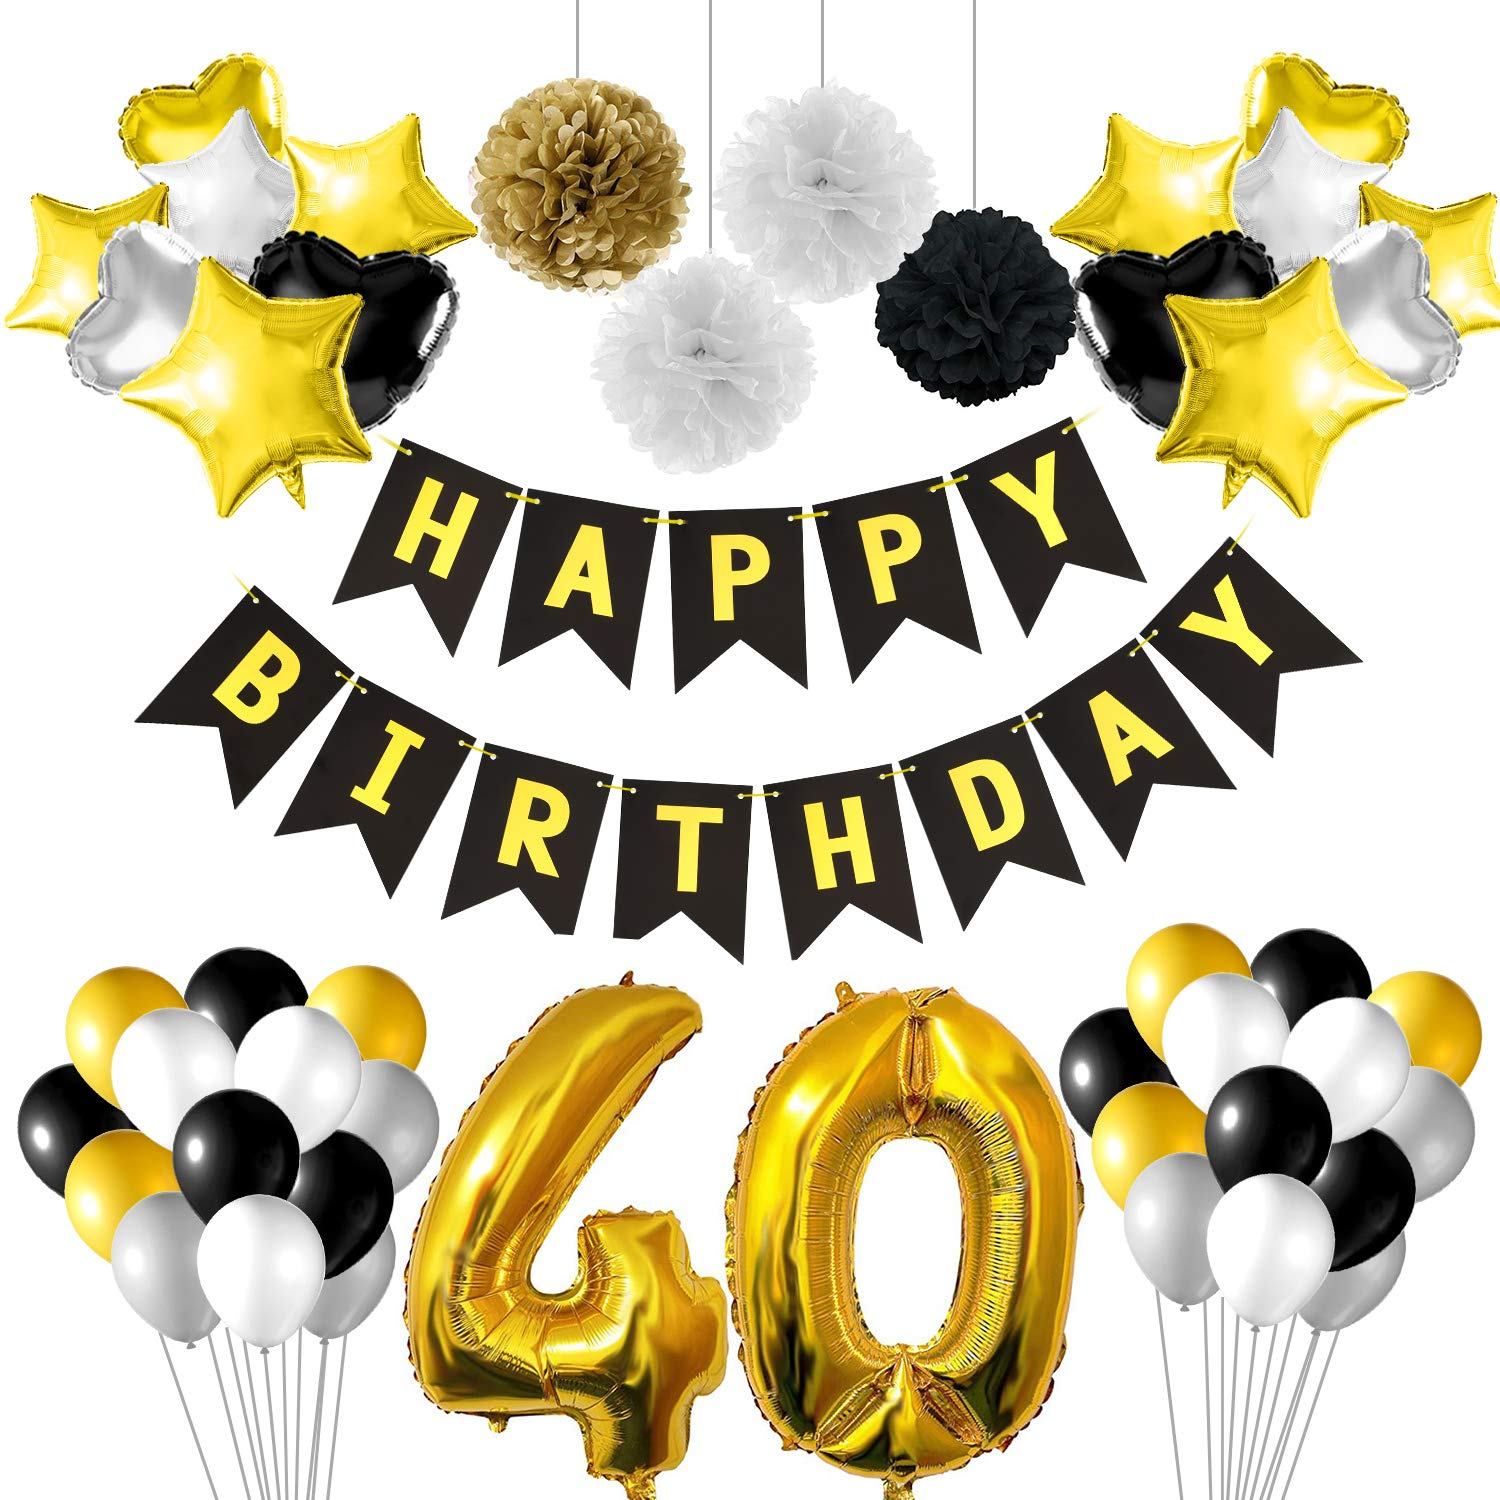 KUUQA 40th Birthday Party Decorations Black And Gold With Banner Foil Balloons Paper Pom Poms For